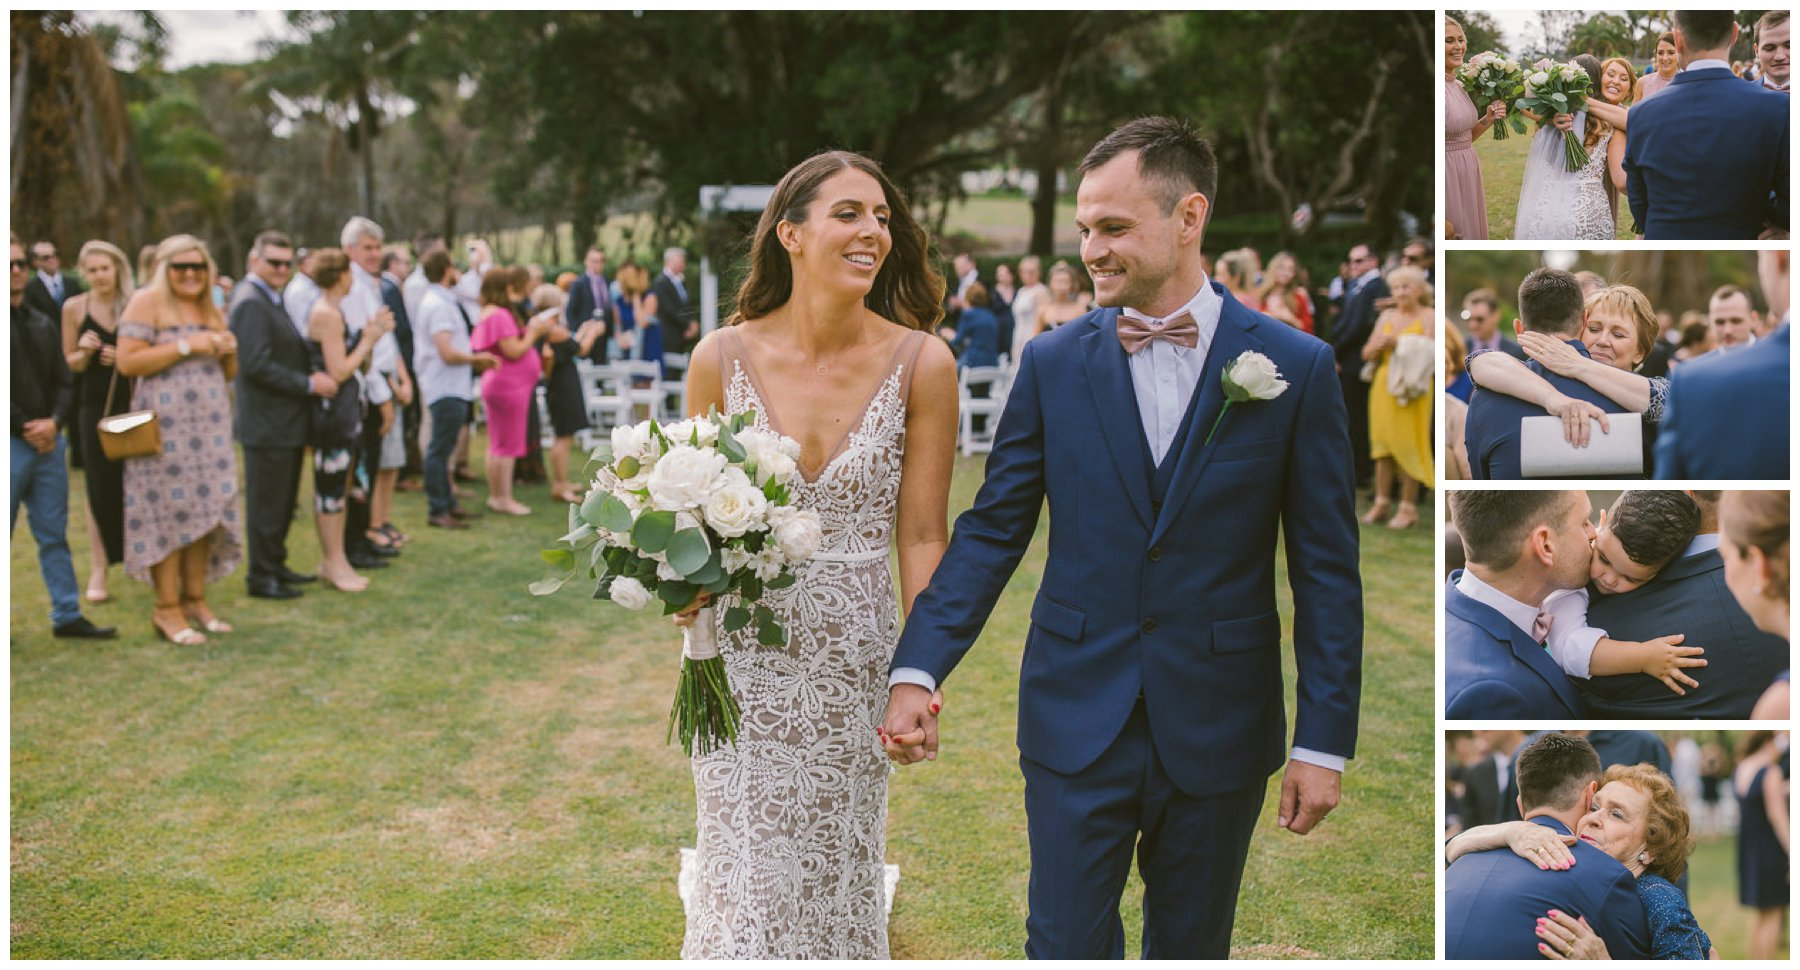 Patrick and Hollie, Coolangatta estate wedding, south coast wedding photographer, Southern Highlands wedding photographer, southern highlands photographer, ceremony exit